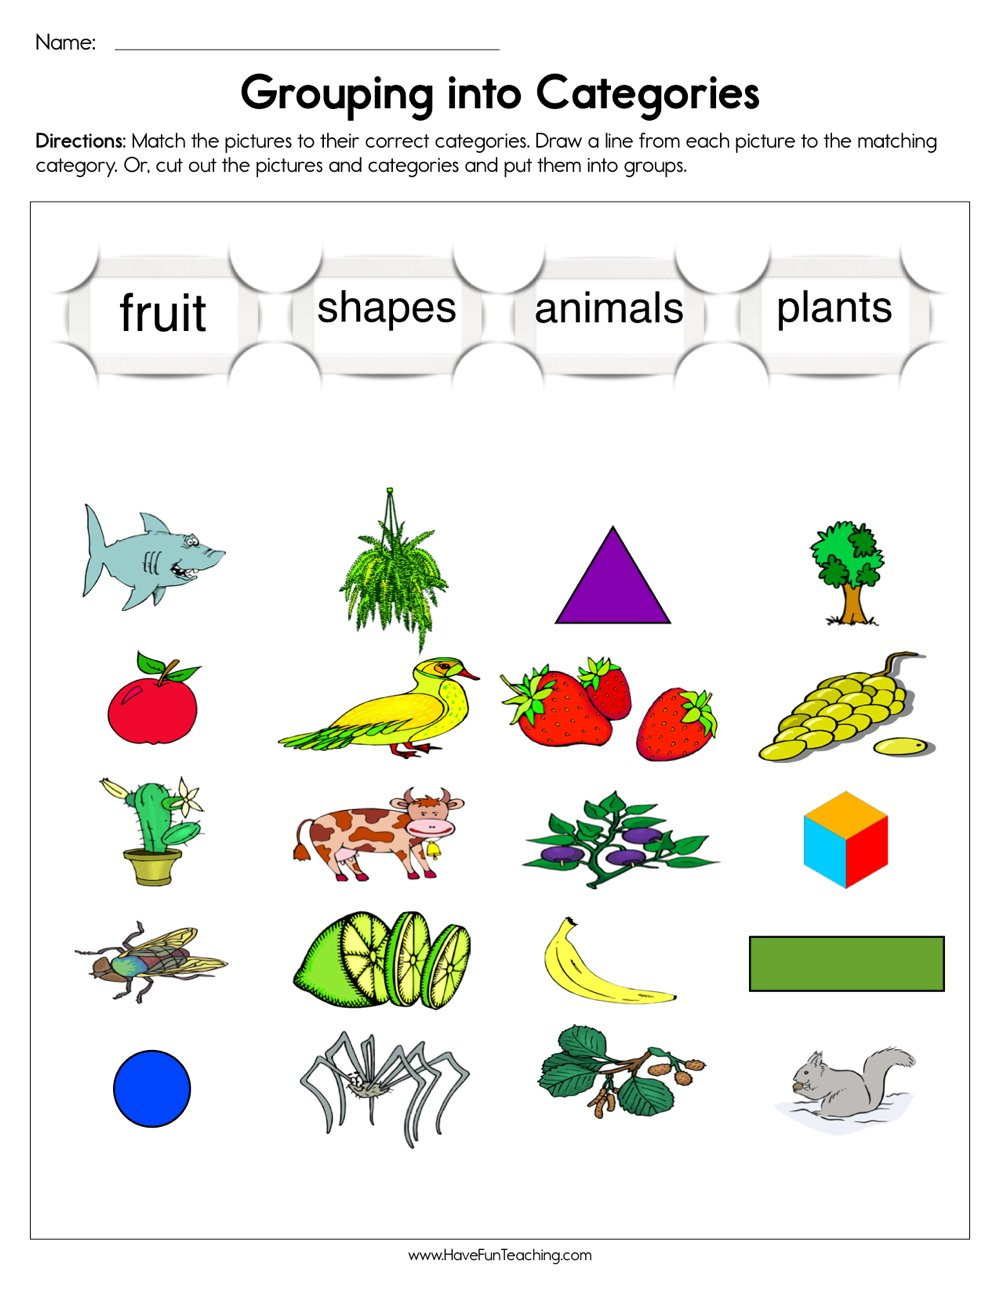 Grouping into Categories Worksheet